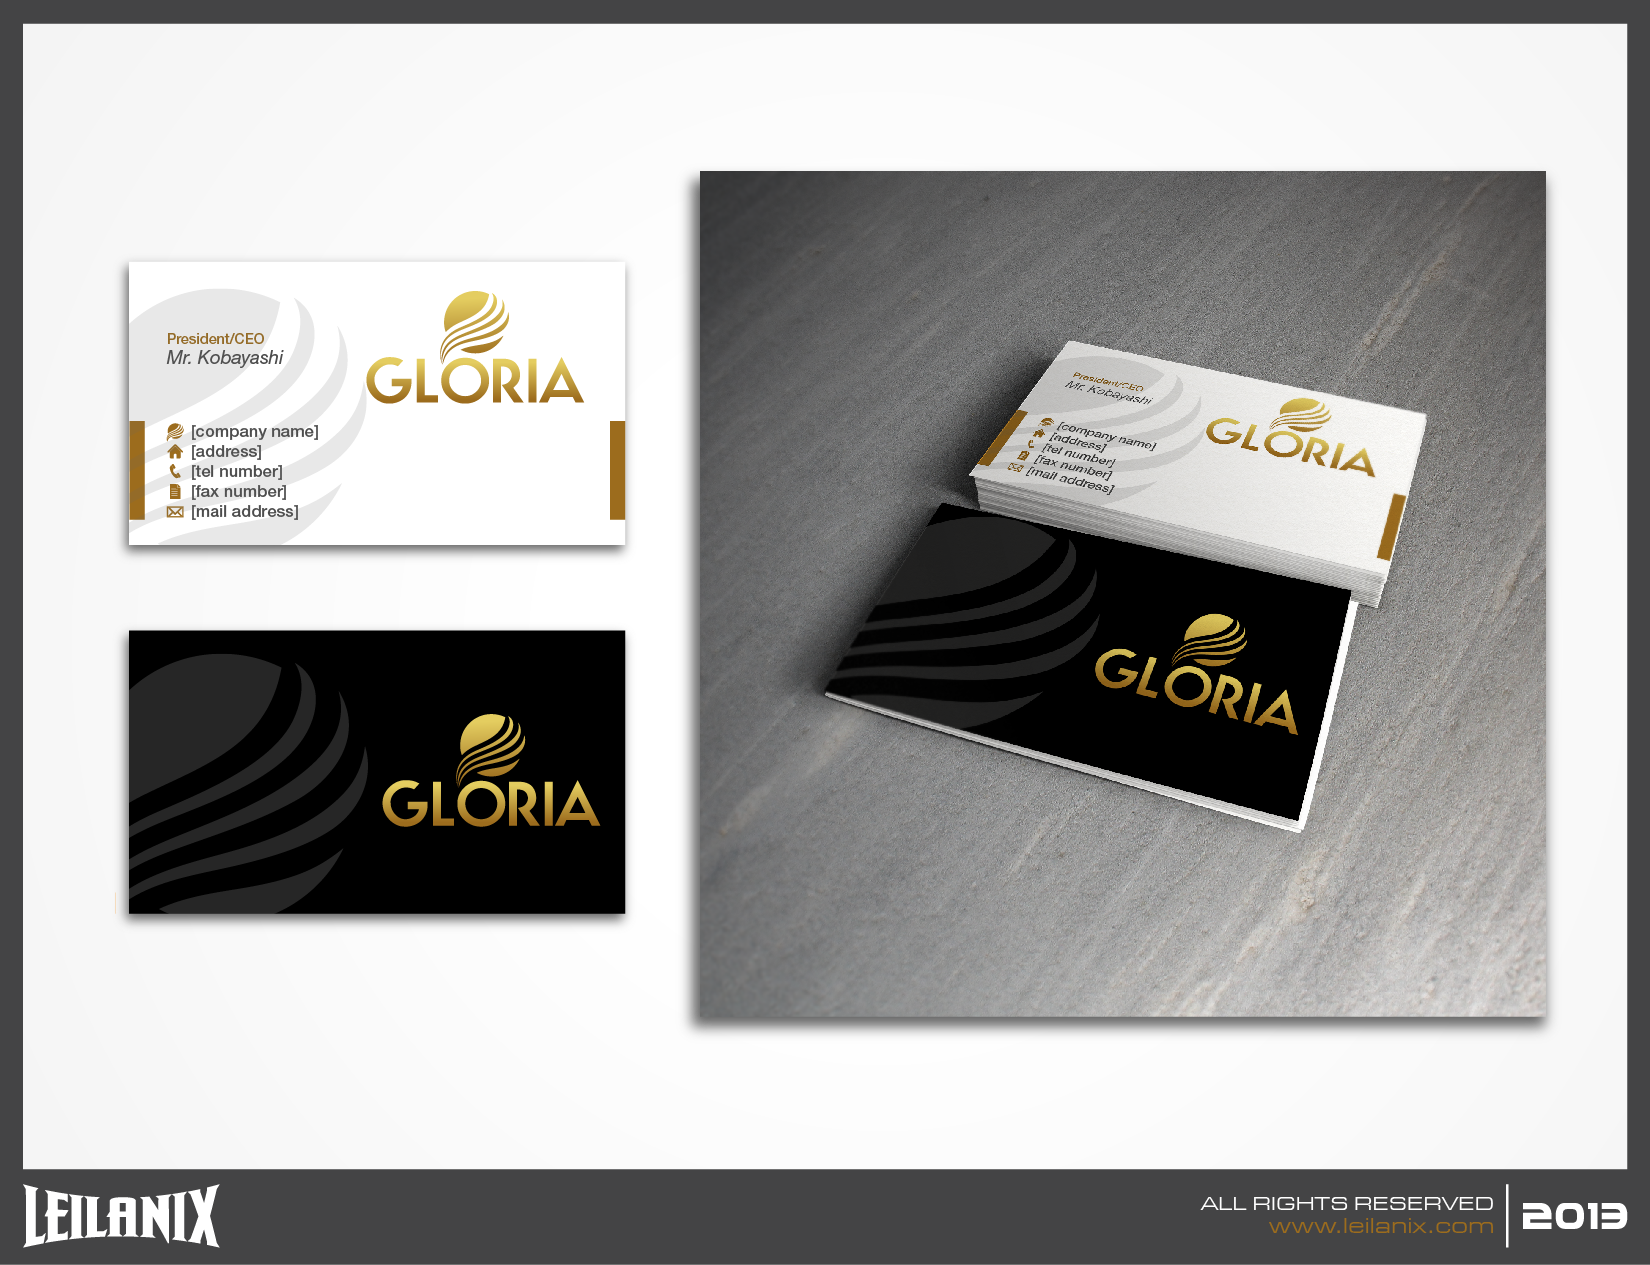 Gloria_mock_up_v4